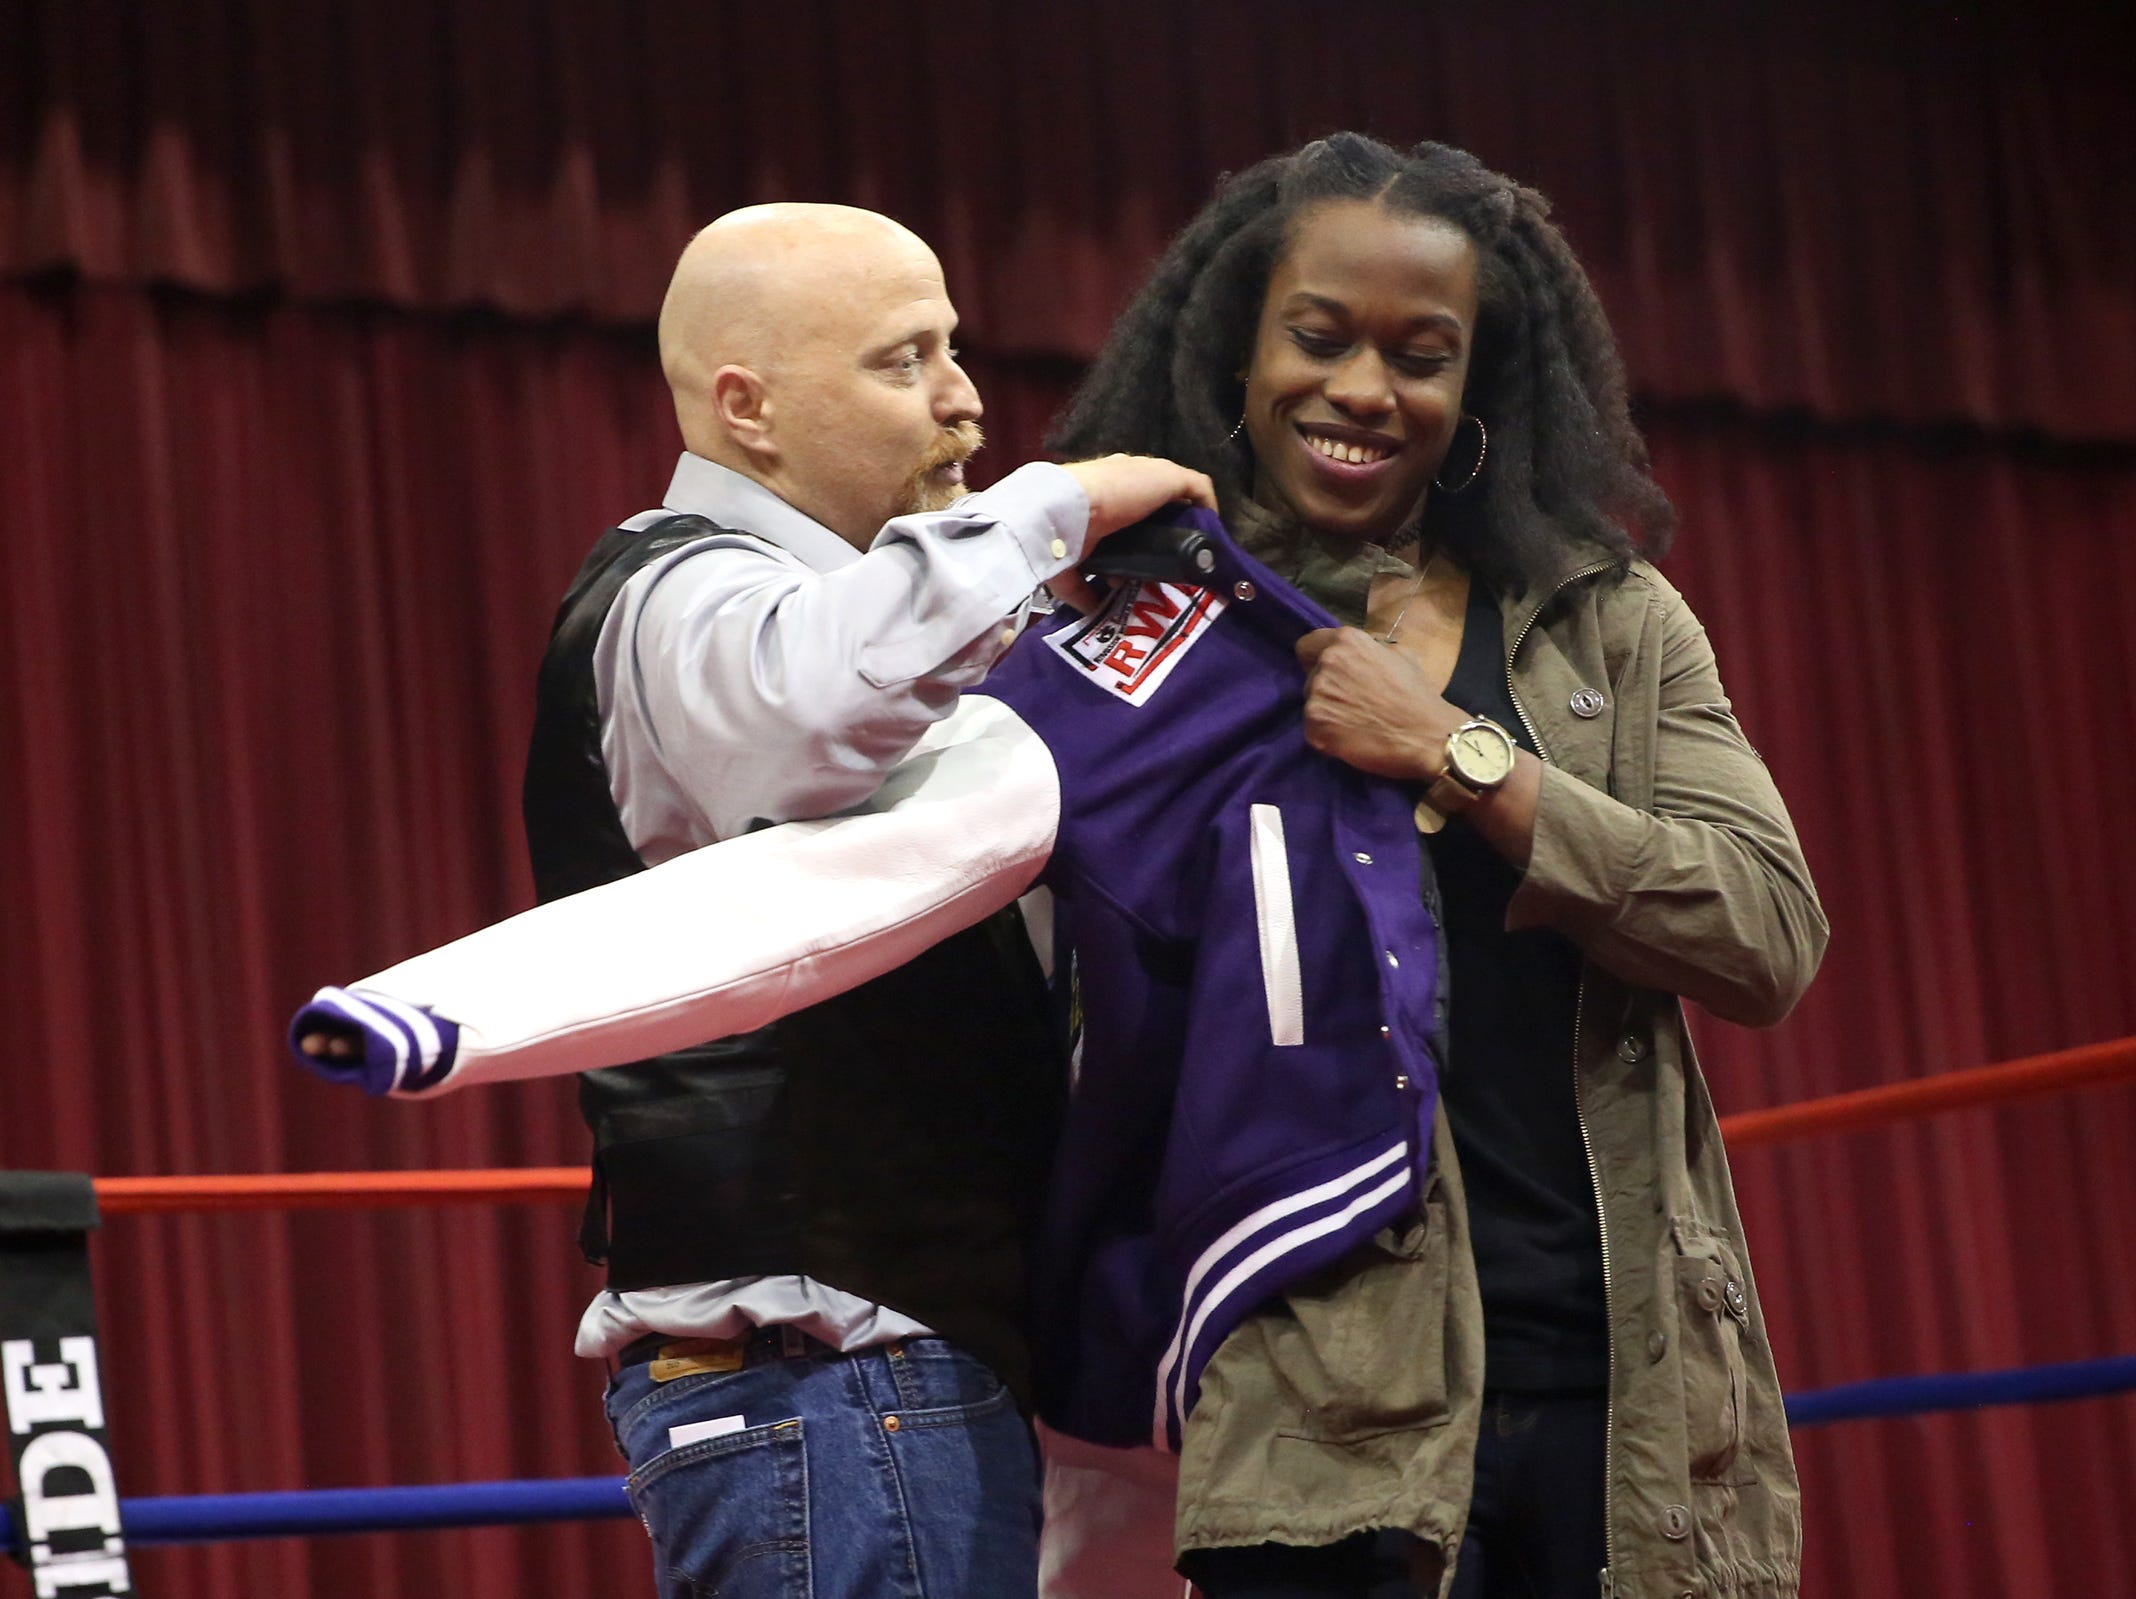 Oregon Golden Gloves state director Daniel Dunn helps Salem's Brittany Sims put on a customized championship letterman jacket at the Salem Armory on Saturday, Feb. 2, 2019.